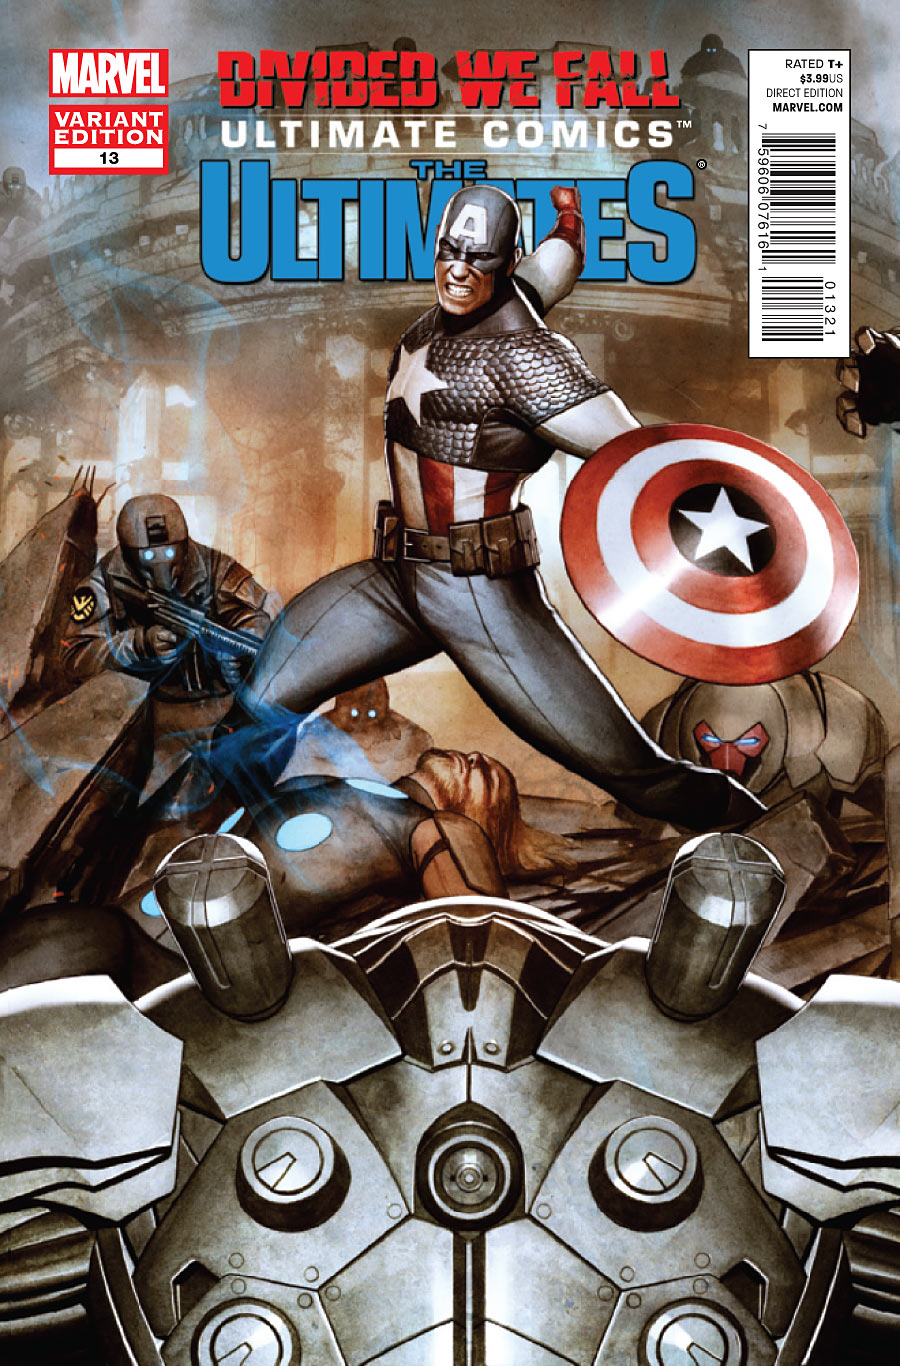 Must see Wallpaper Marvel Variant - latest?cb\u003d20120720212212  Collection_244960.jpg/revision/latest?cb\u003d20120720212212